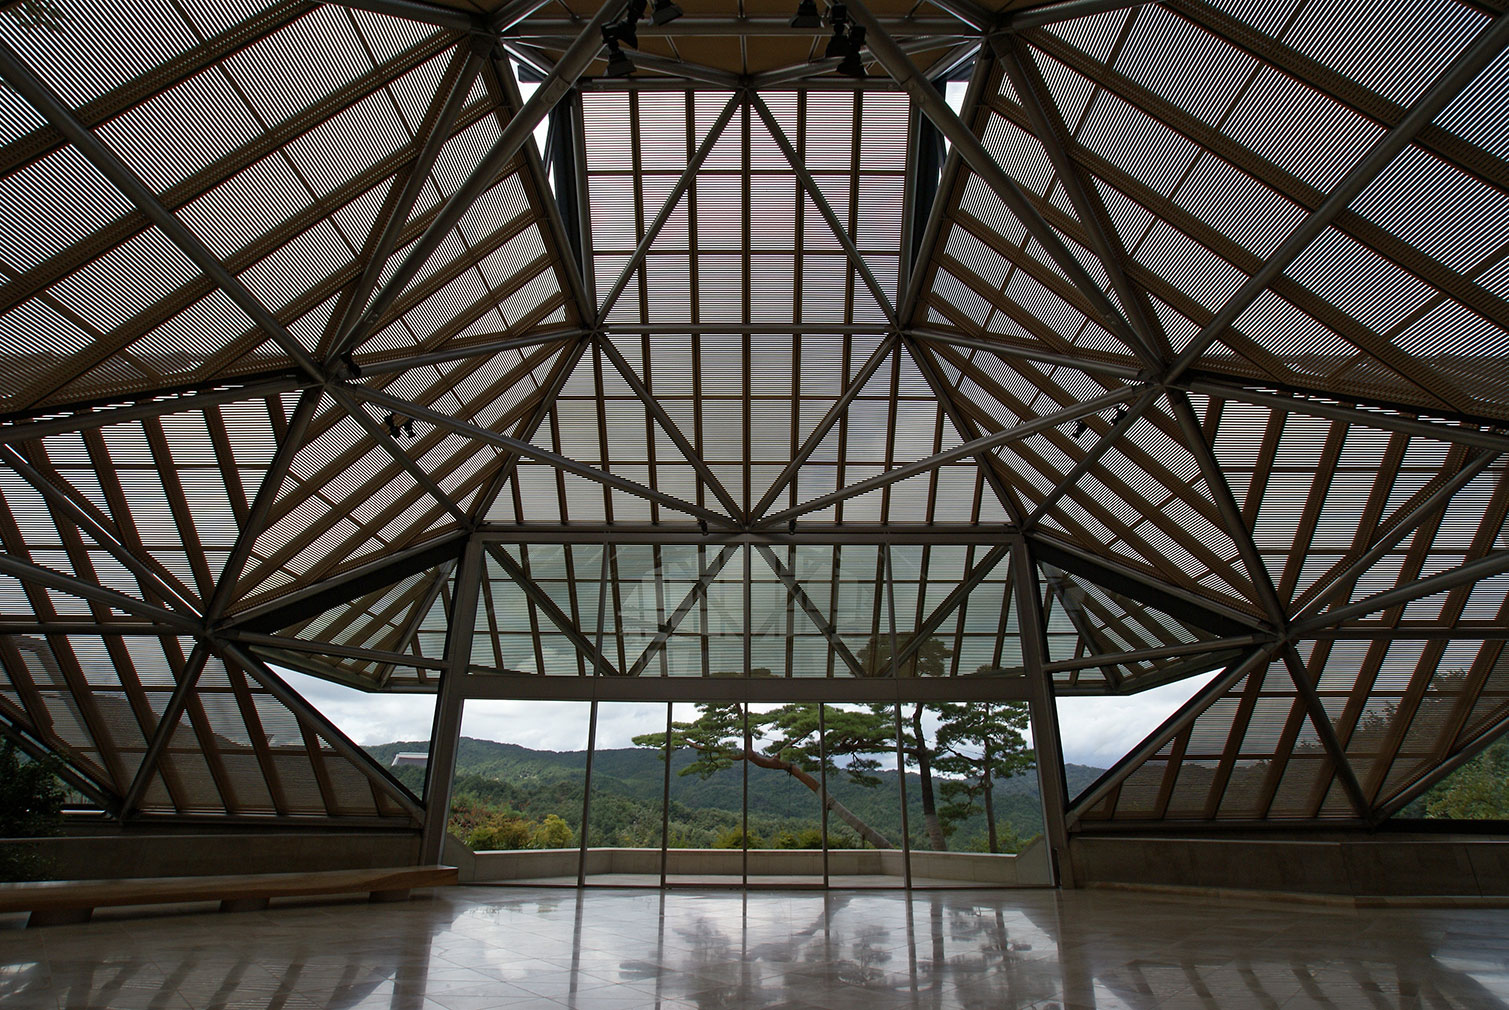 Miho Museum by IM Pei